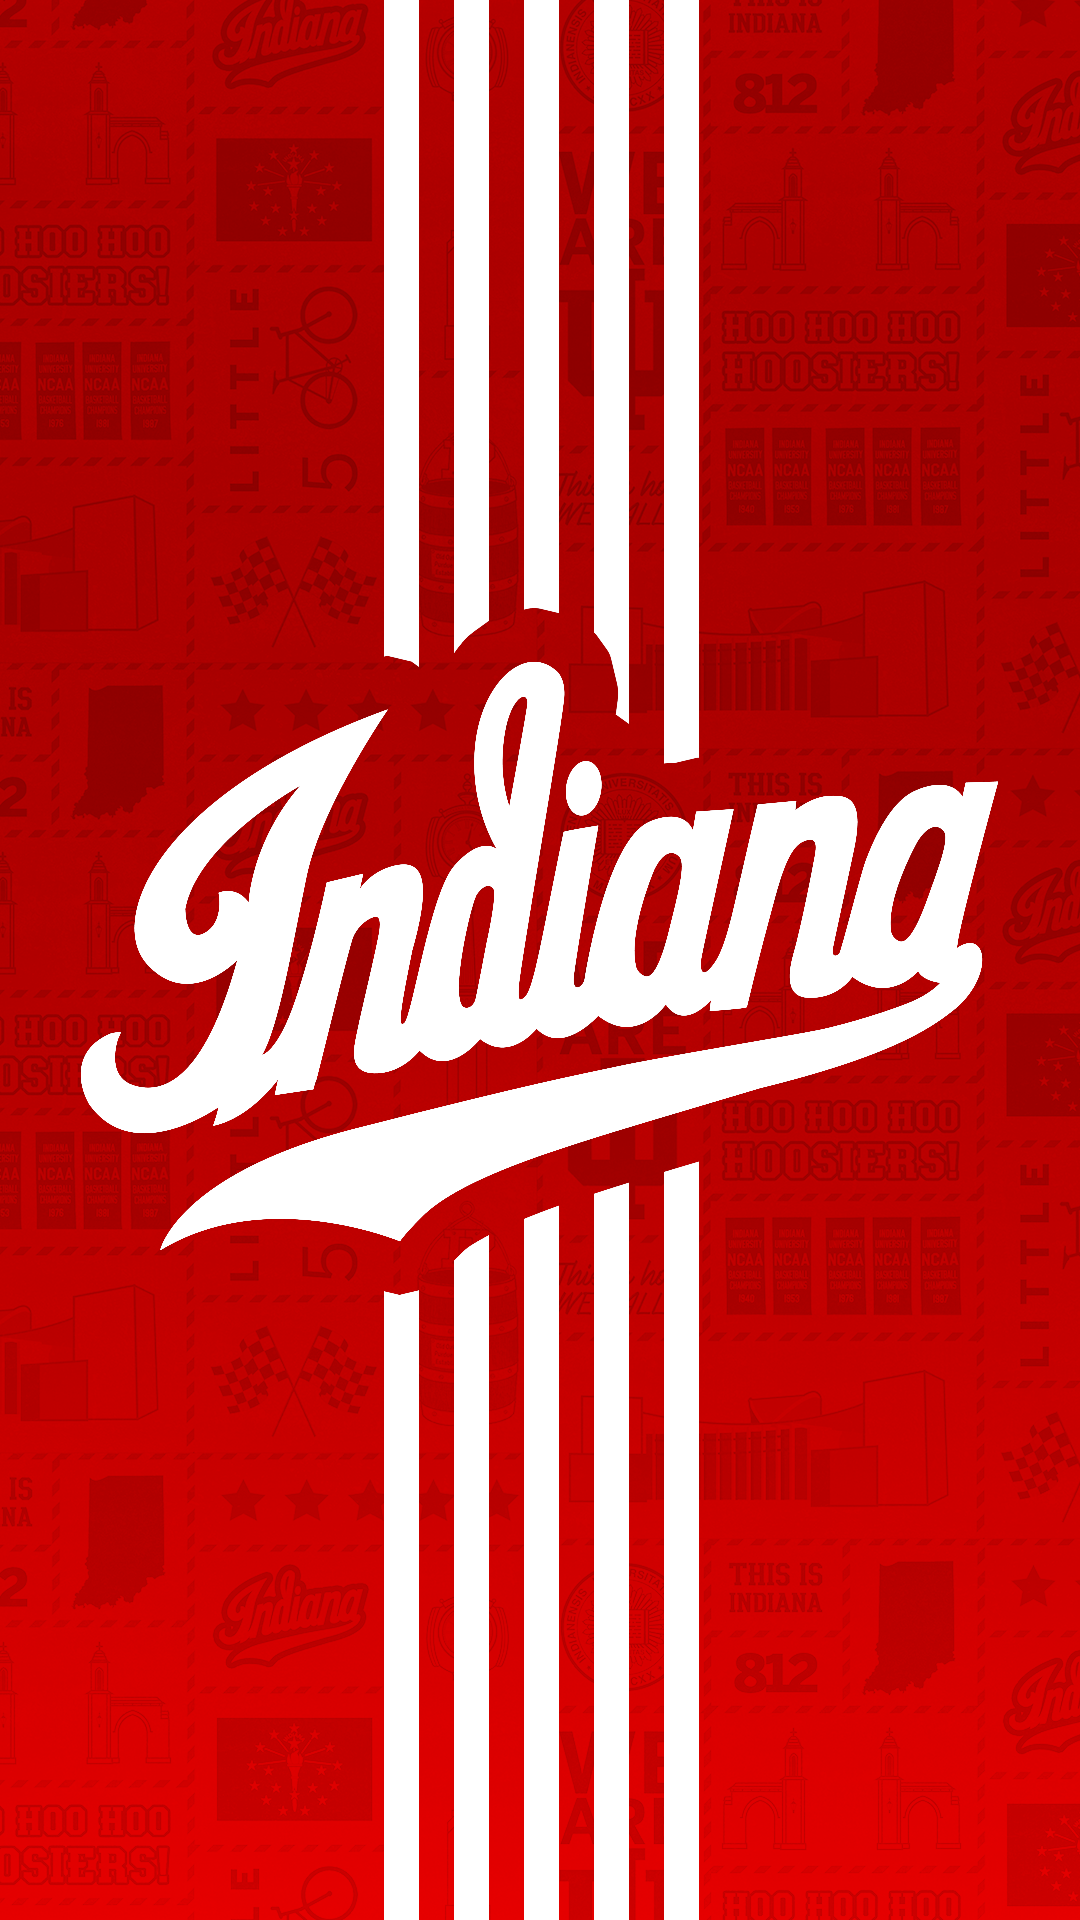 Phone Wallpapers - Indiana University Athletics